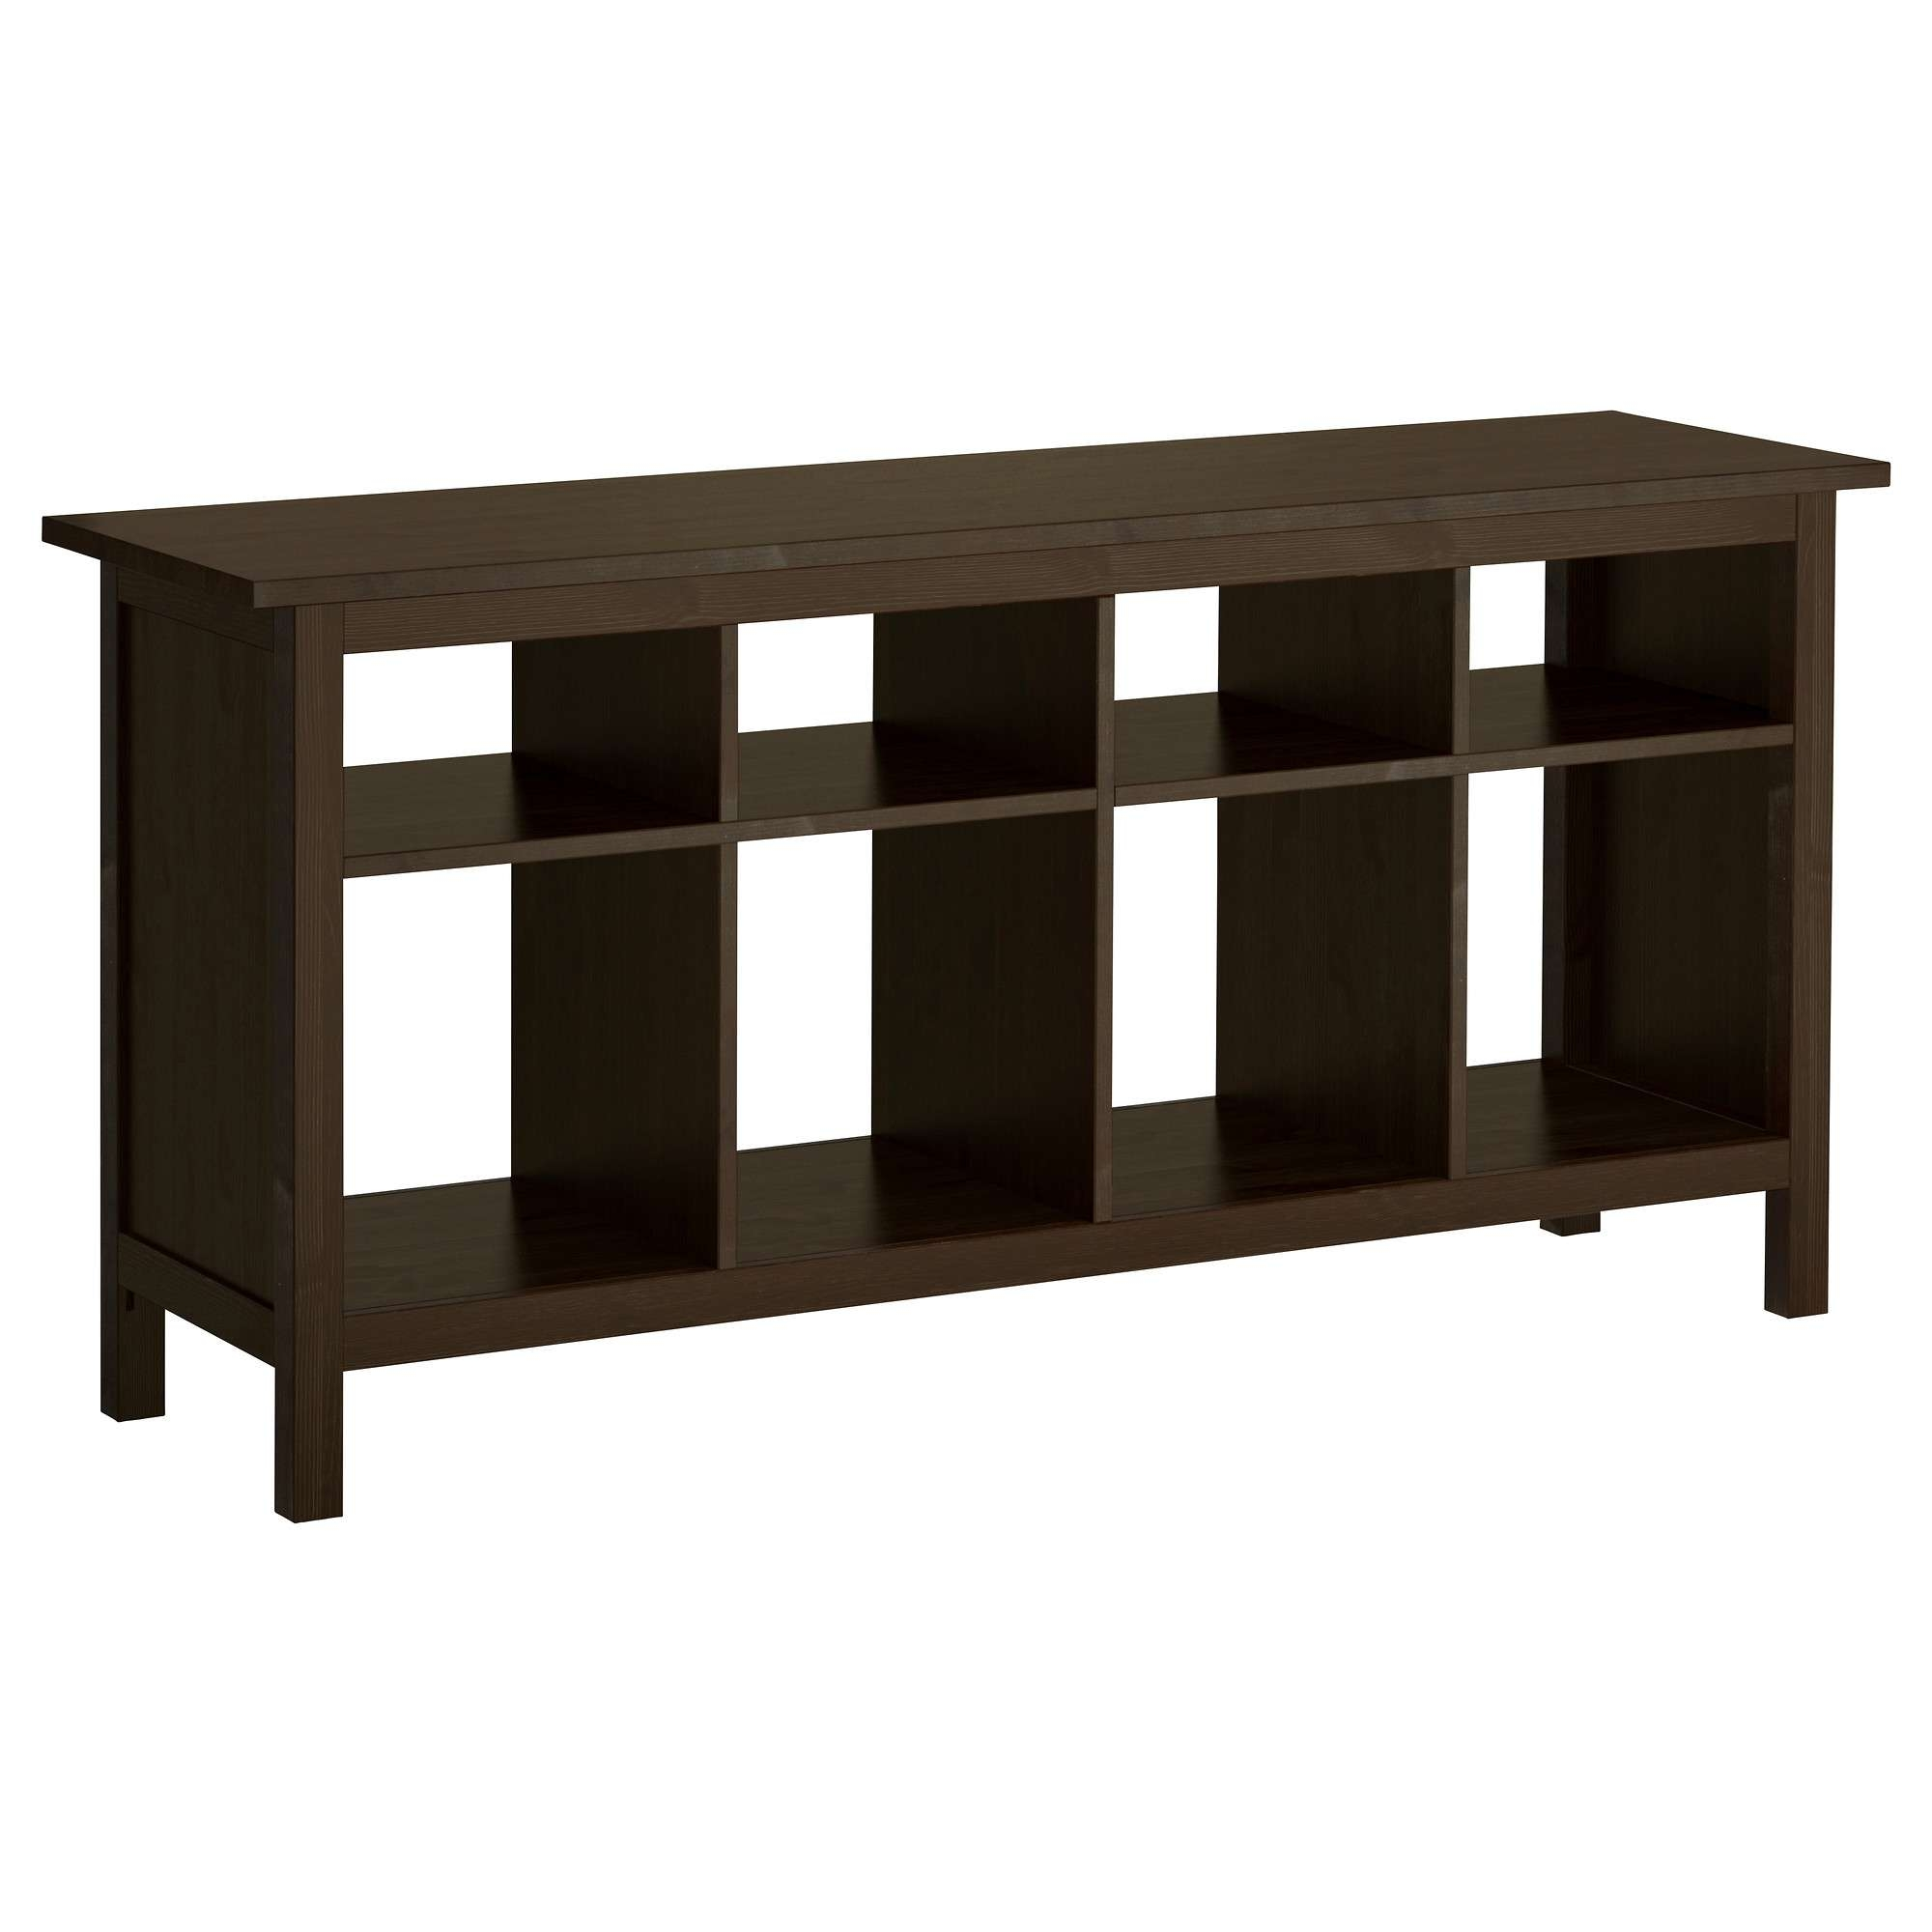 Console Tables, Sofa Tables & Sideboards – Ikea For Sideboards Tables (View 6 of 20)